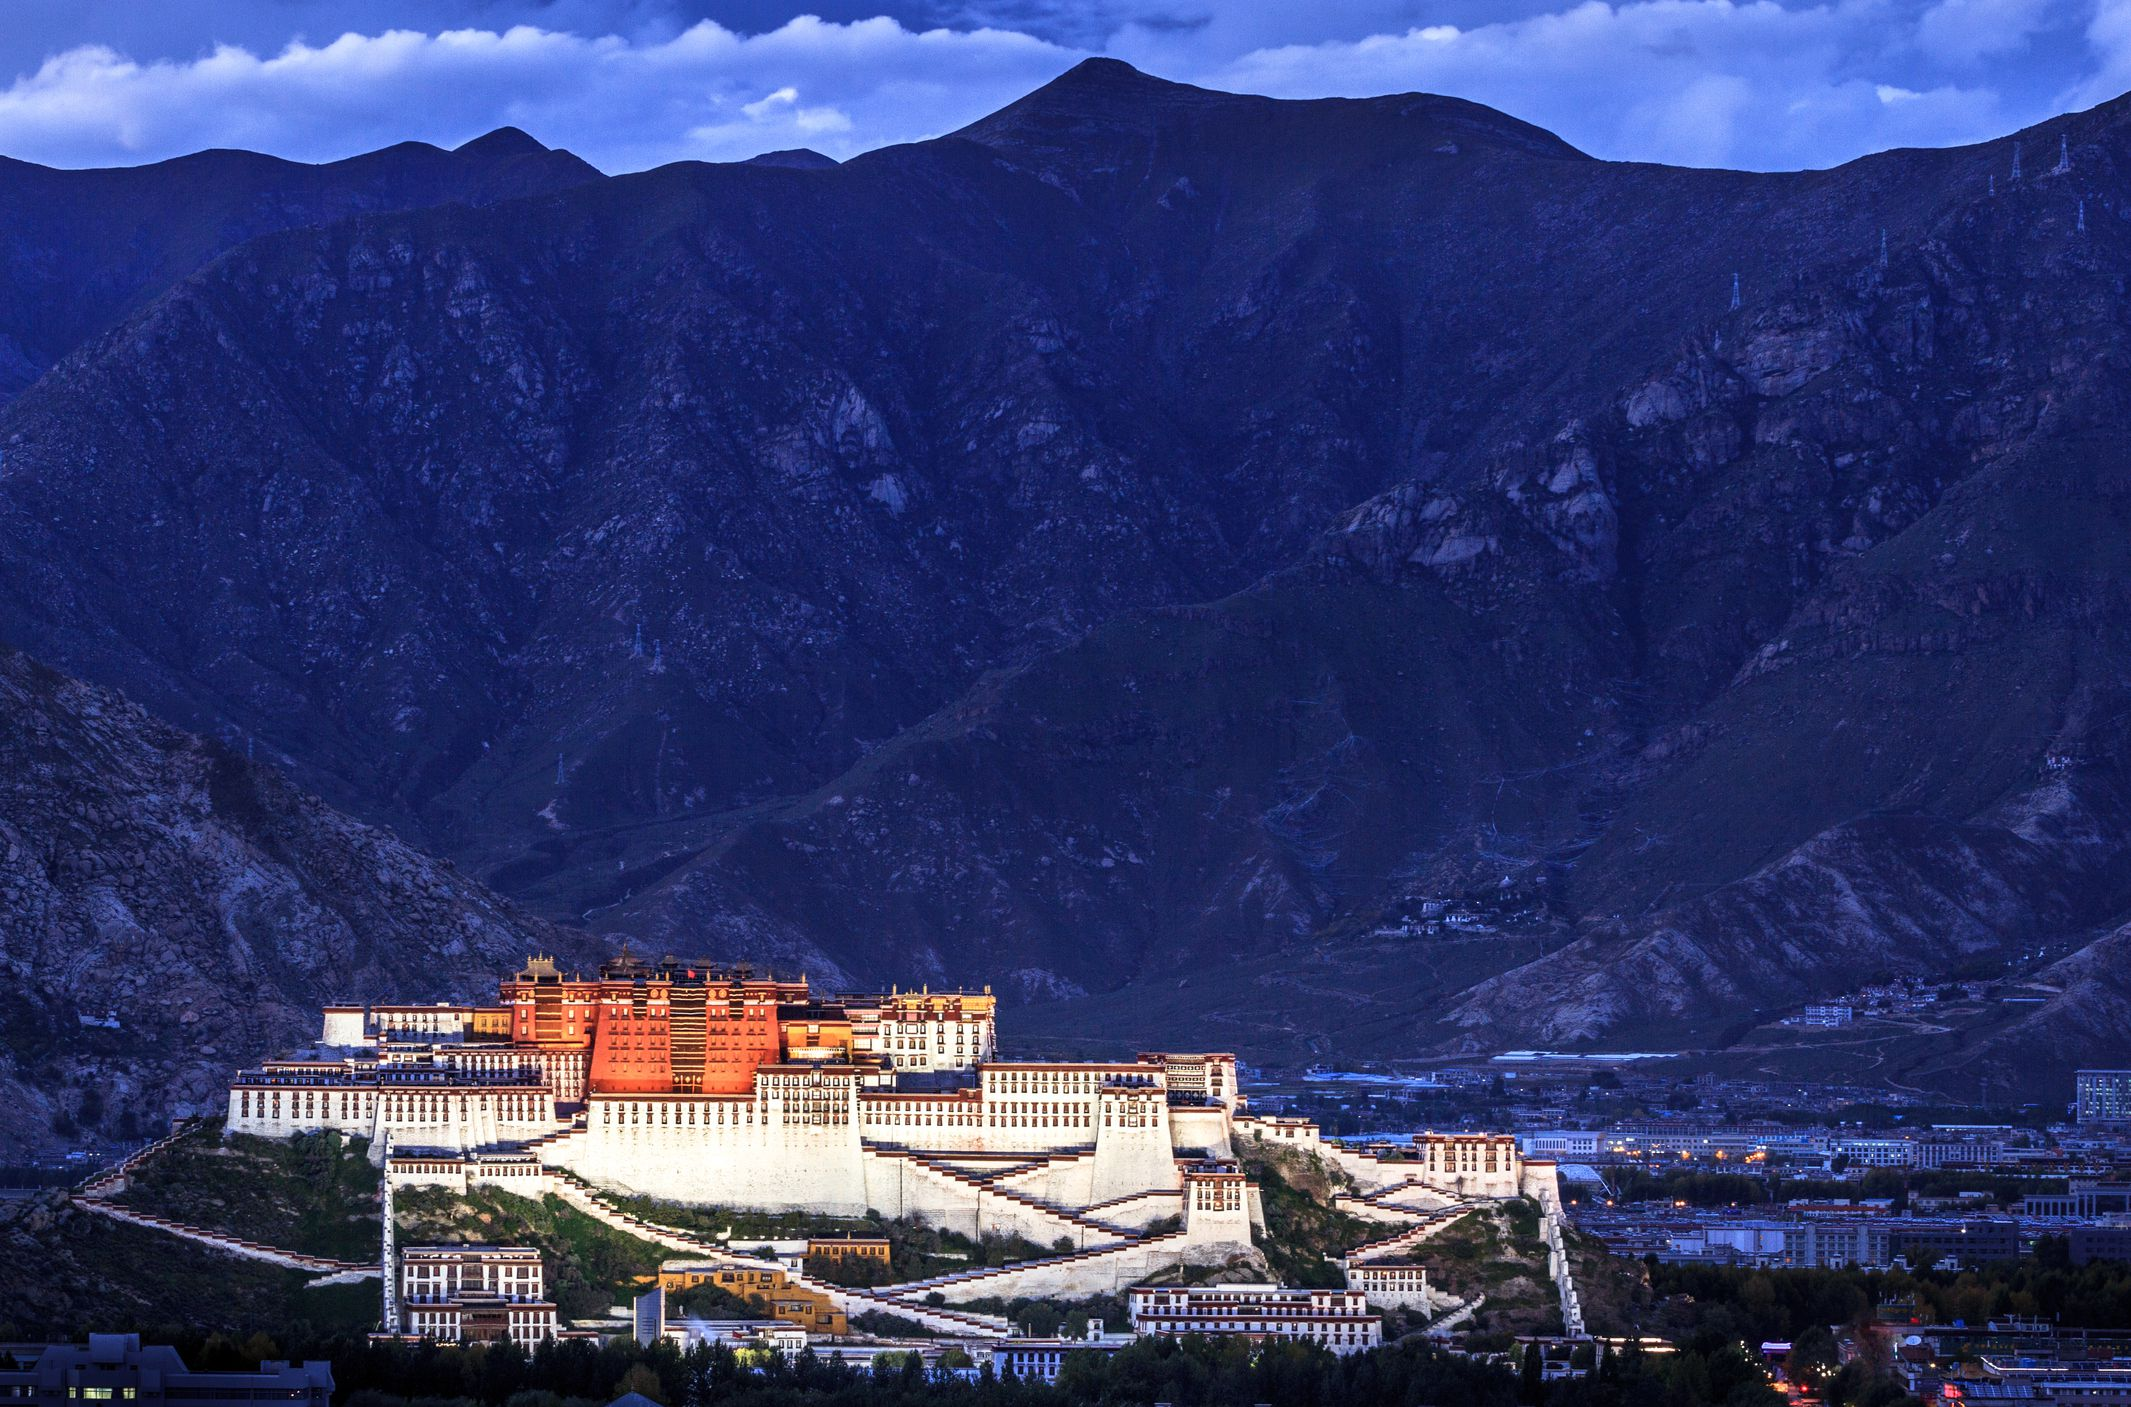 How To Get To Lhasa Tibet From China